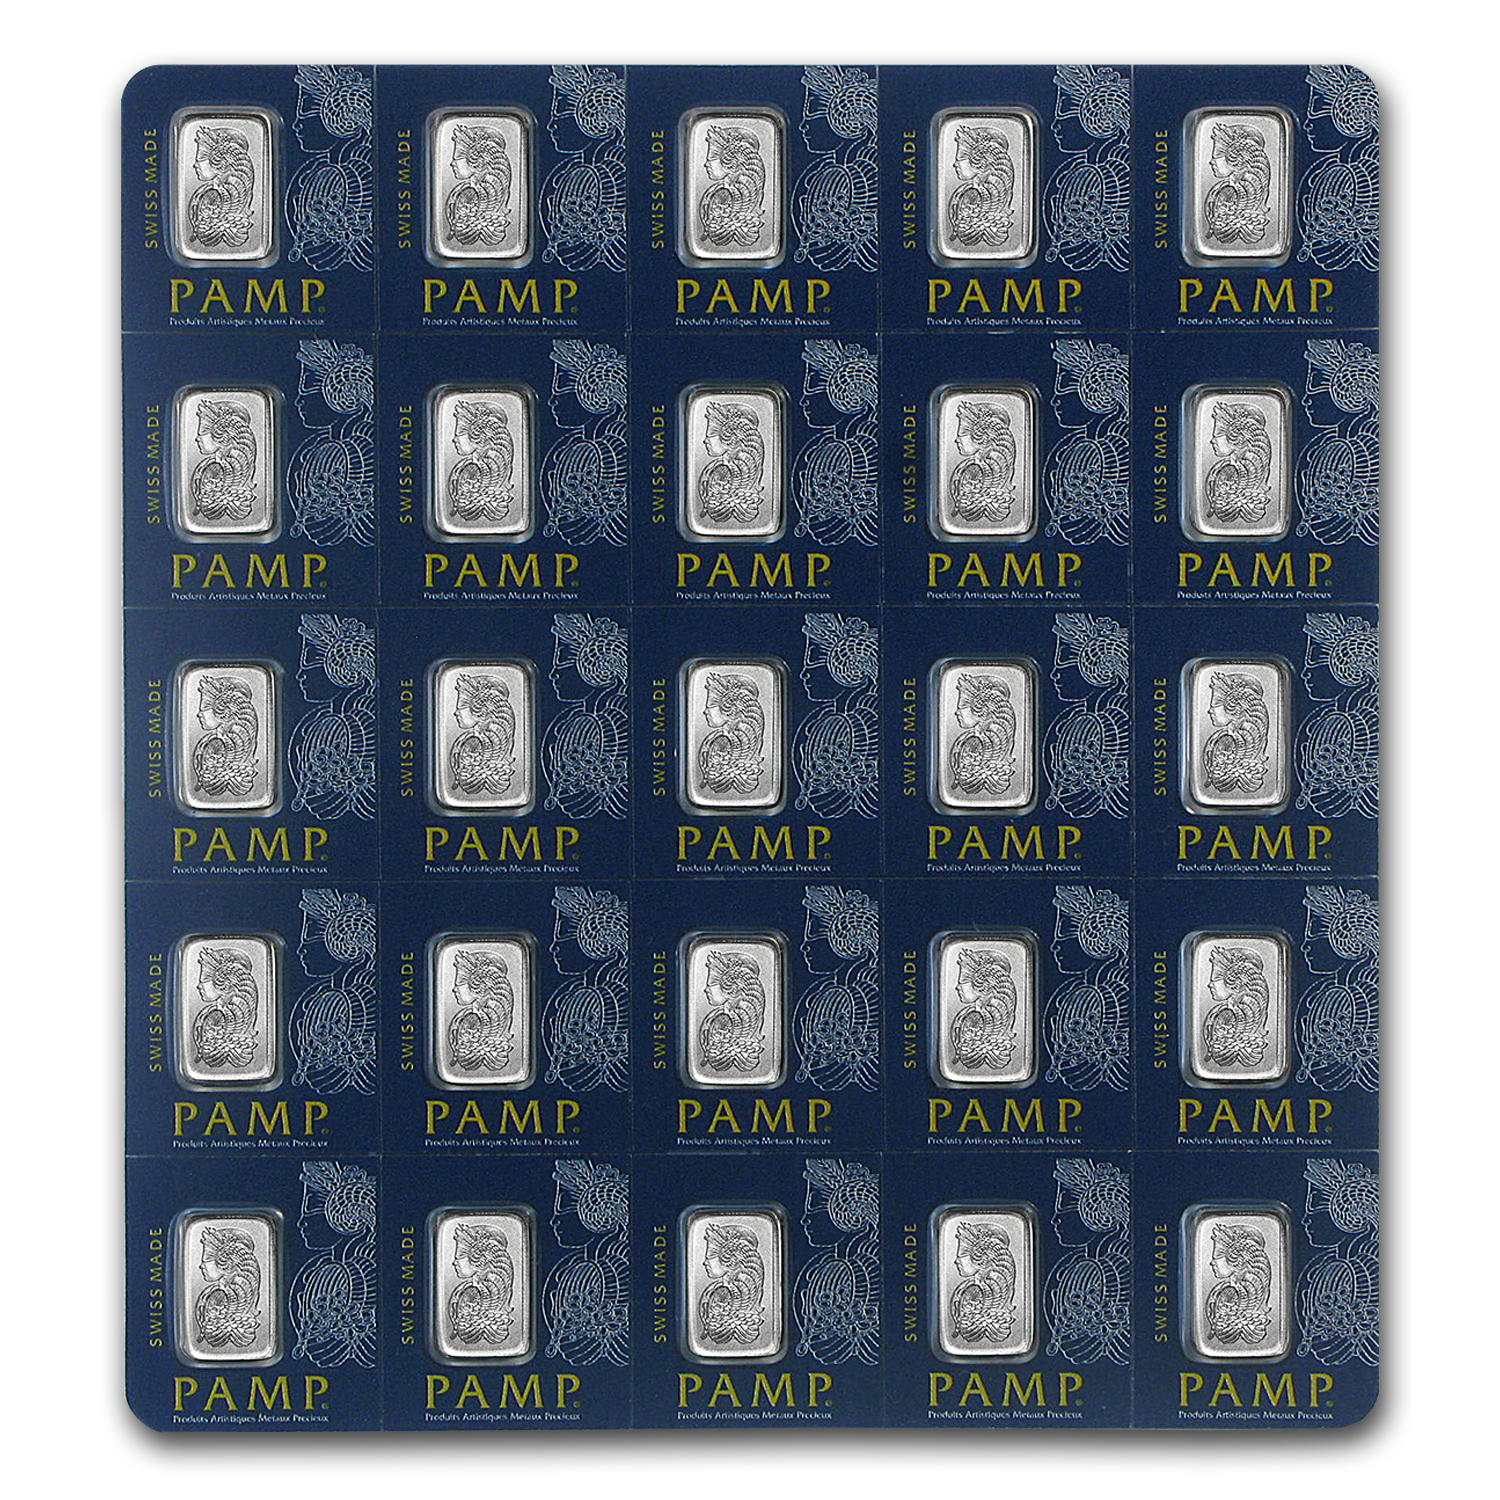 25x1 gram Platinum Bar PAMP Suisse Multigram+25 (In Assay)